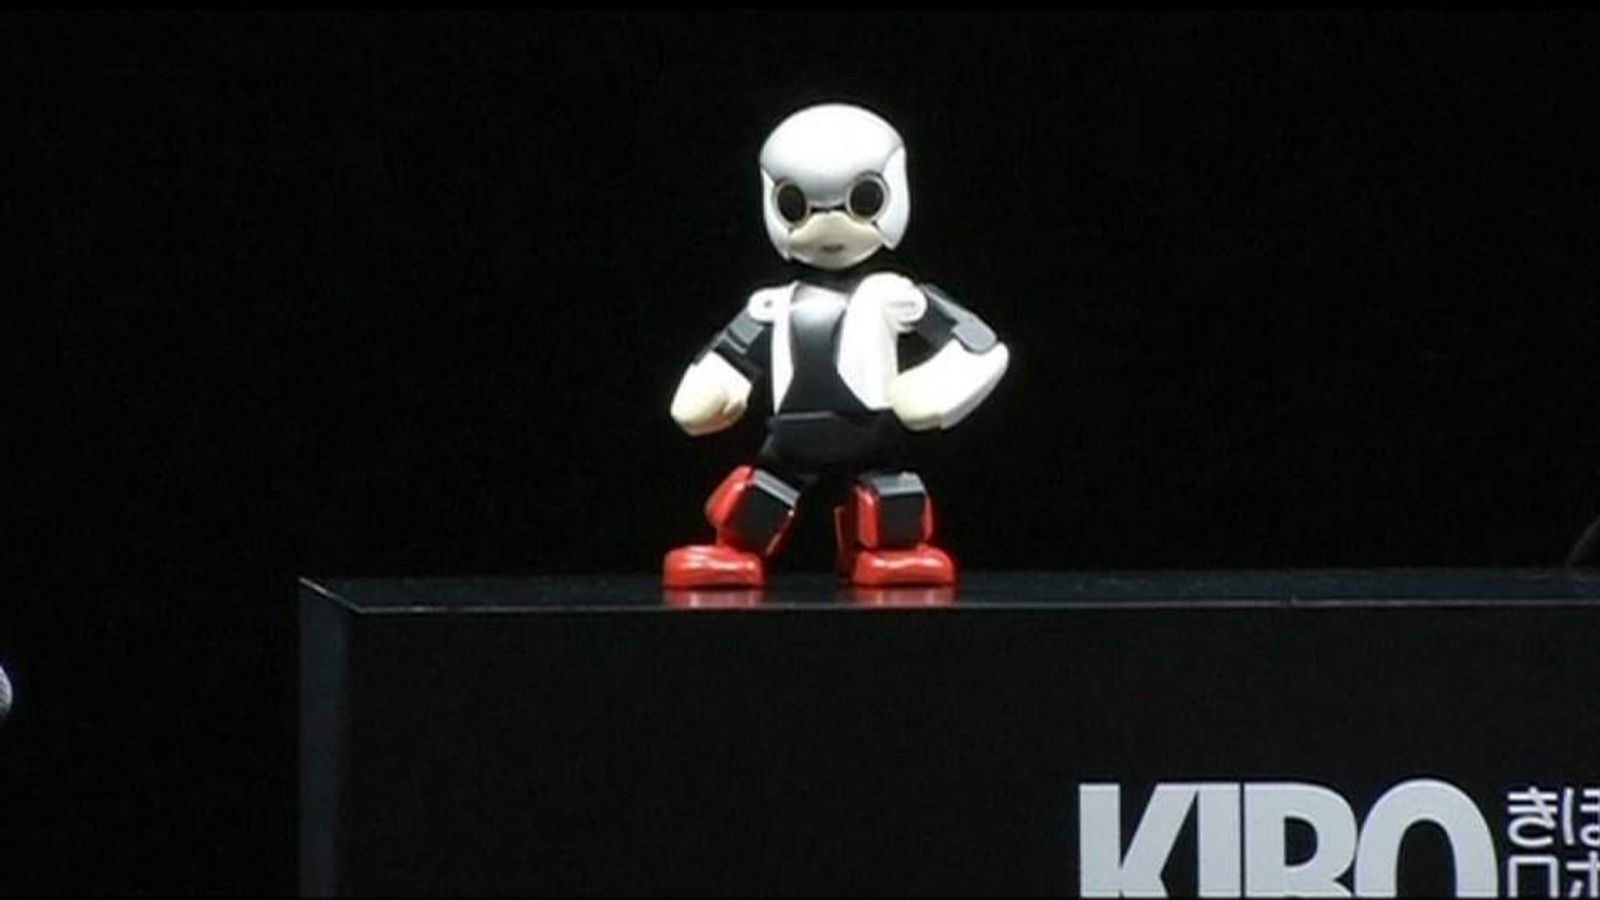 Talking Robot Kirobo